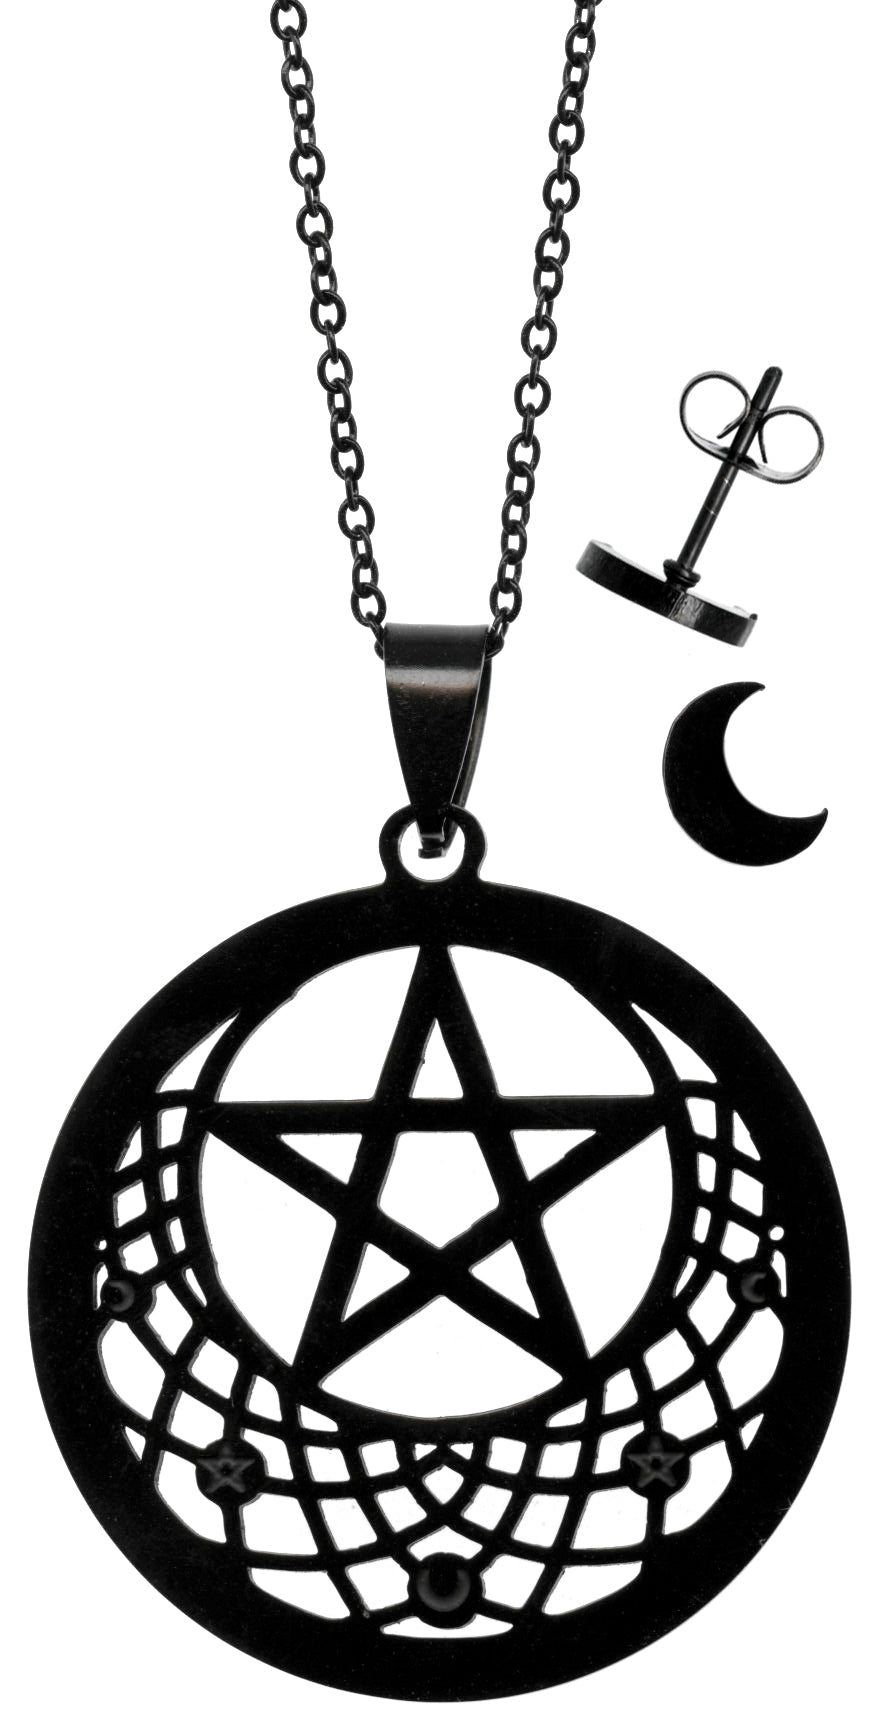 Pentacle Crescent Moon Wicca Black Stainless Steel Necklace and Stud Earrings Set